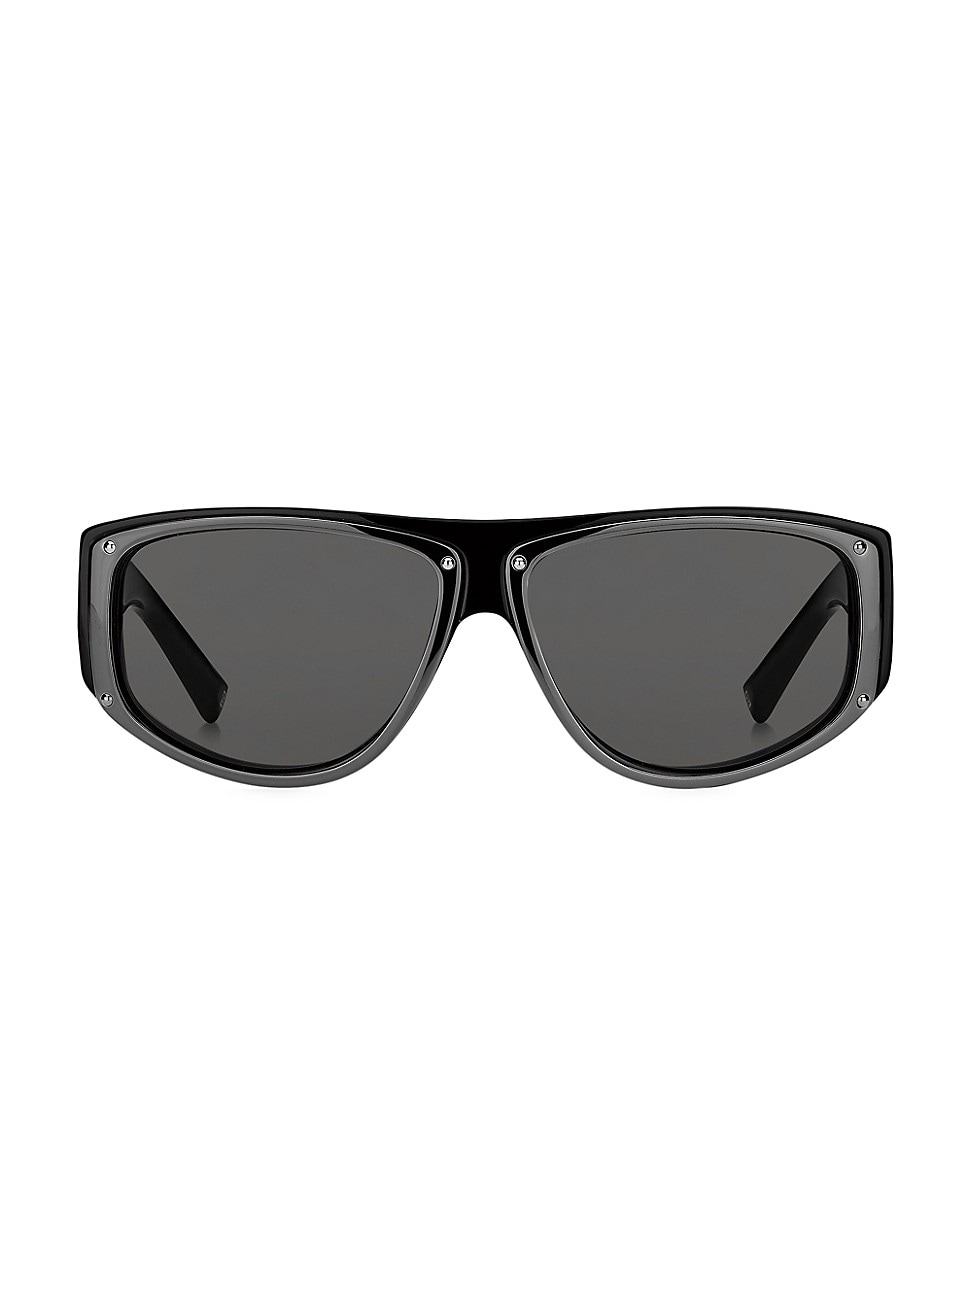 Givenchy MEN'S 60MM OVAL SUNGLASSES